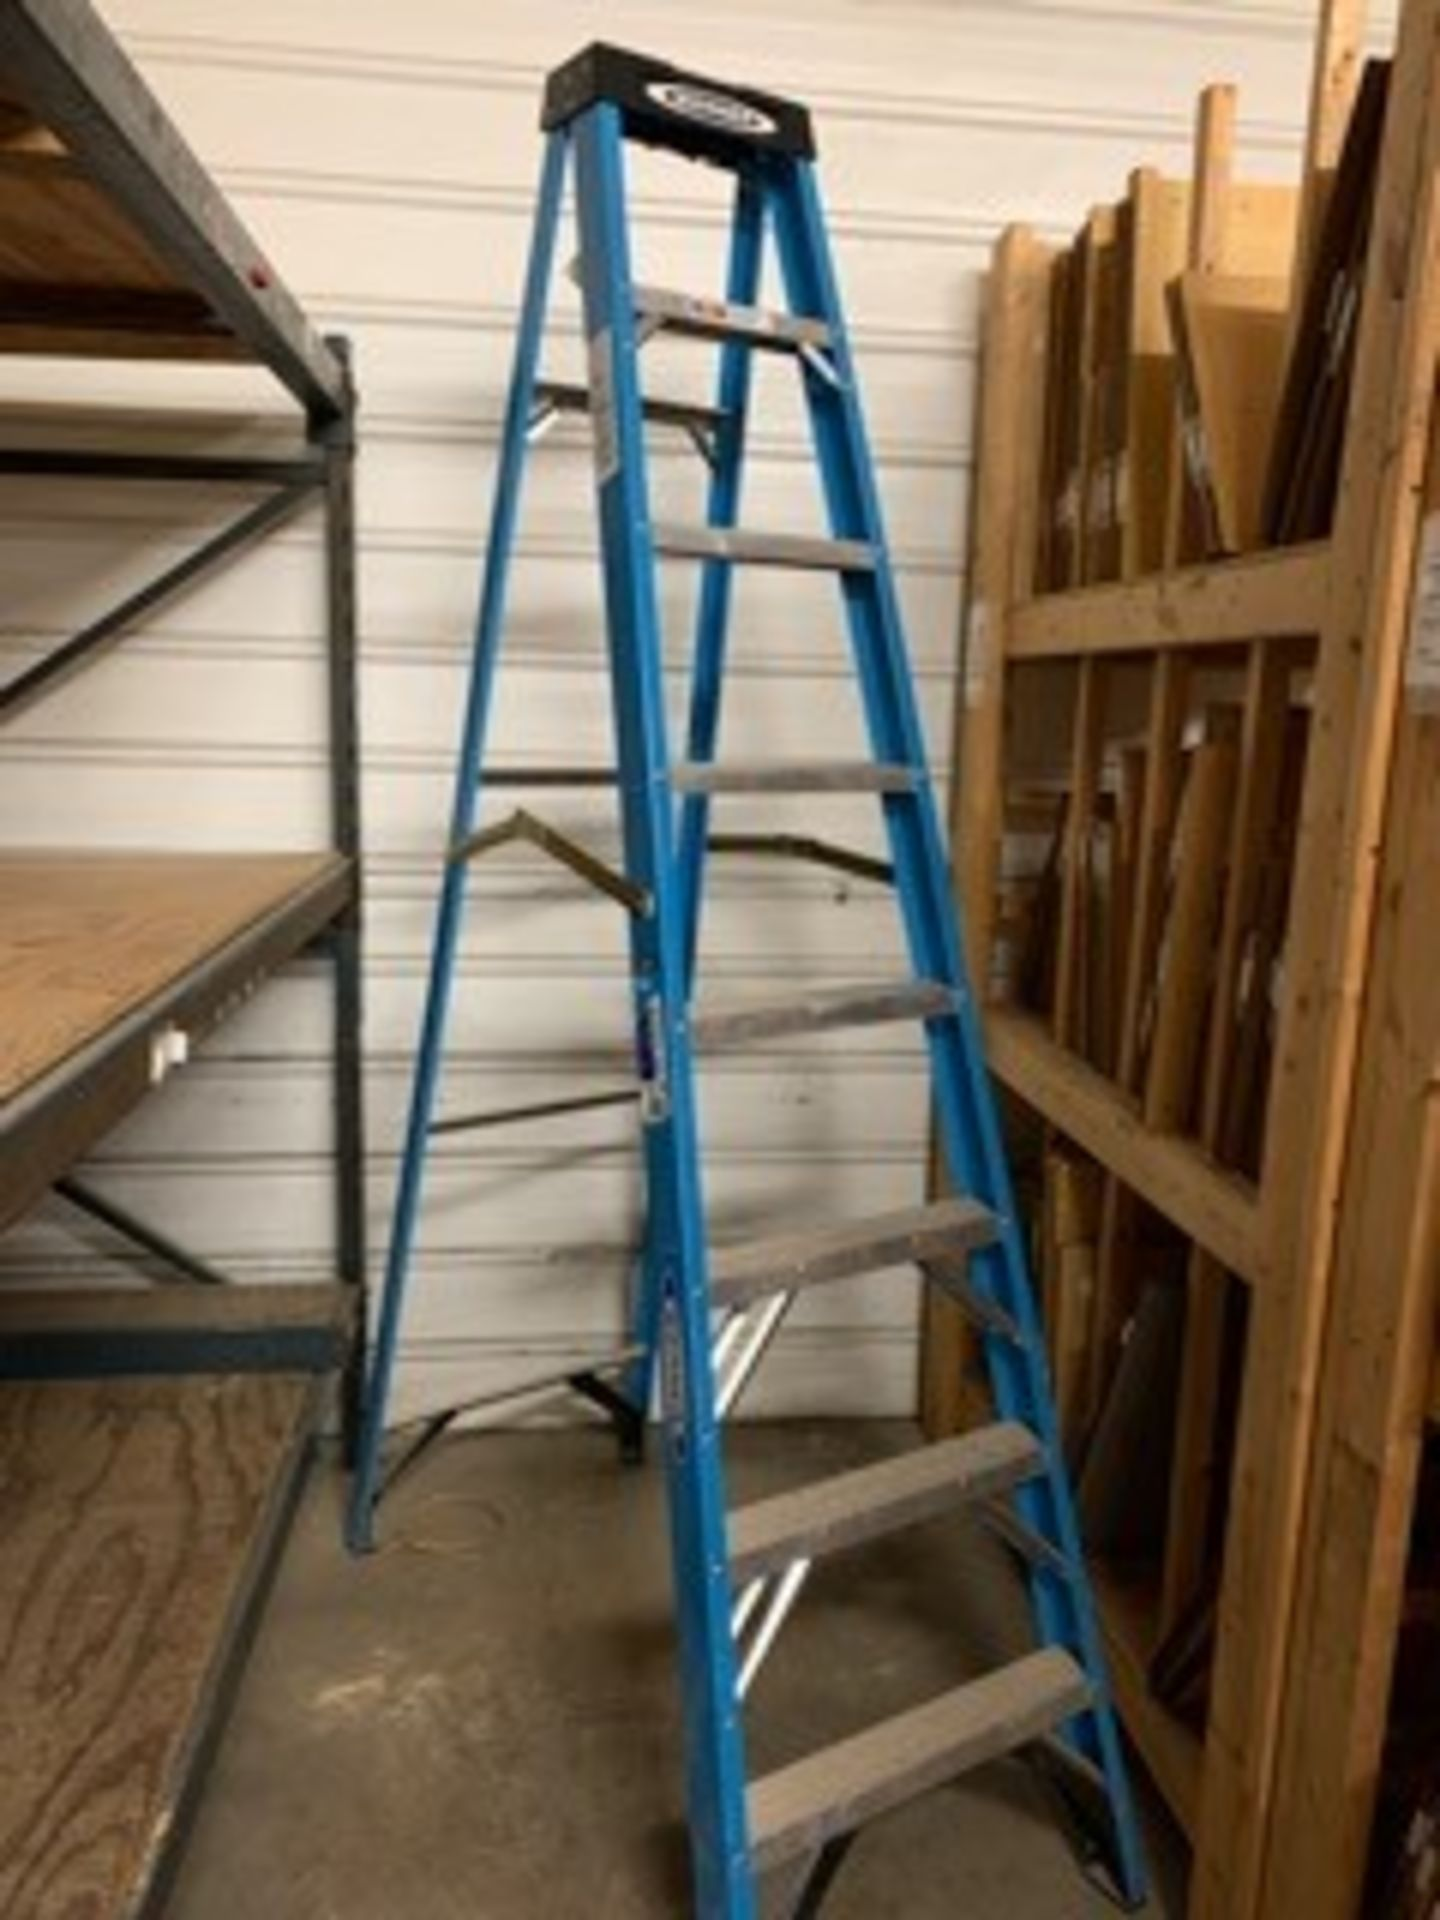 Lot 5069 - 8FT. LADDER (LOCATED AT: 16335 LIMA ROAD, HUNTERTOWN, IN 46748)